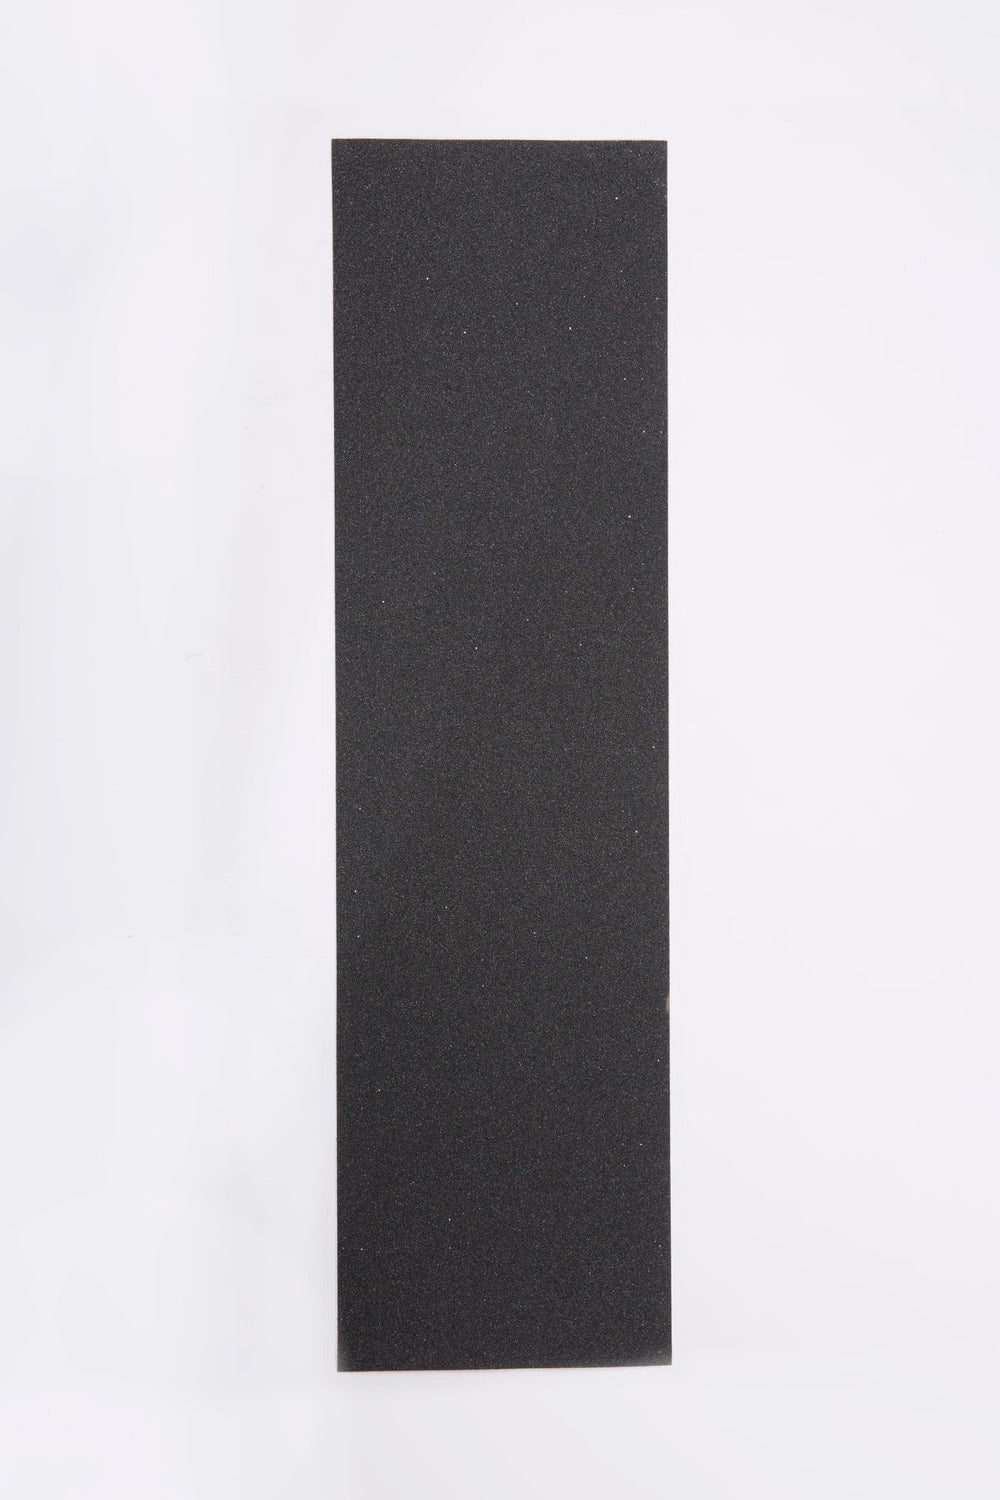 JESSUP Grip Tape Black